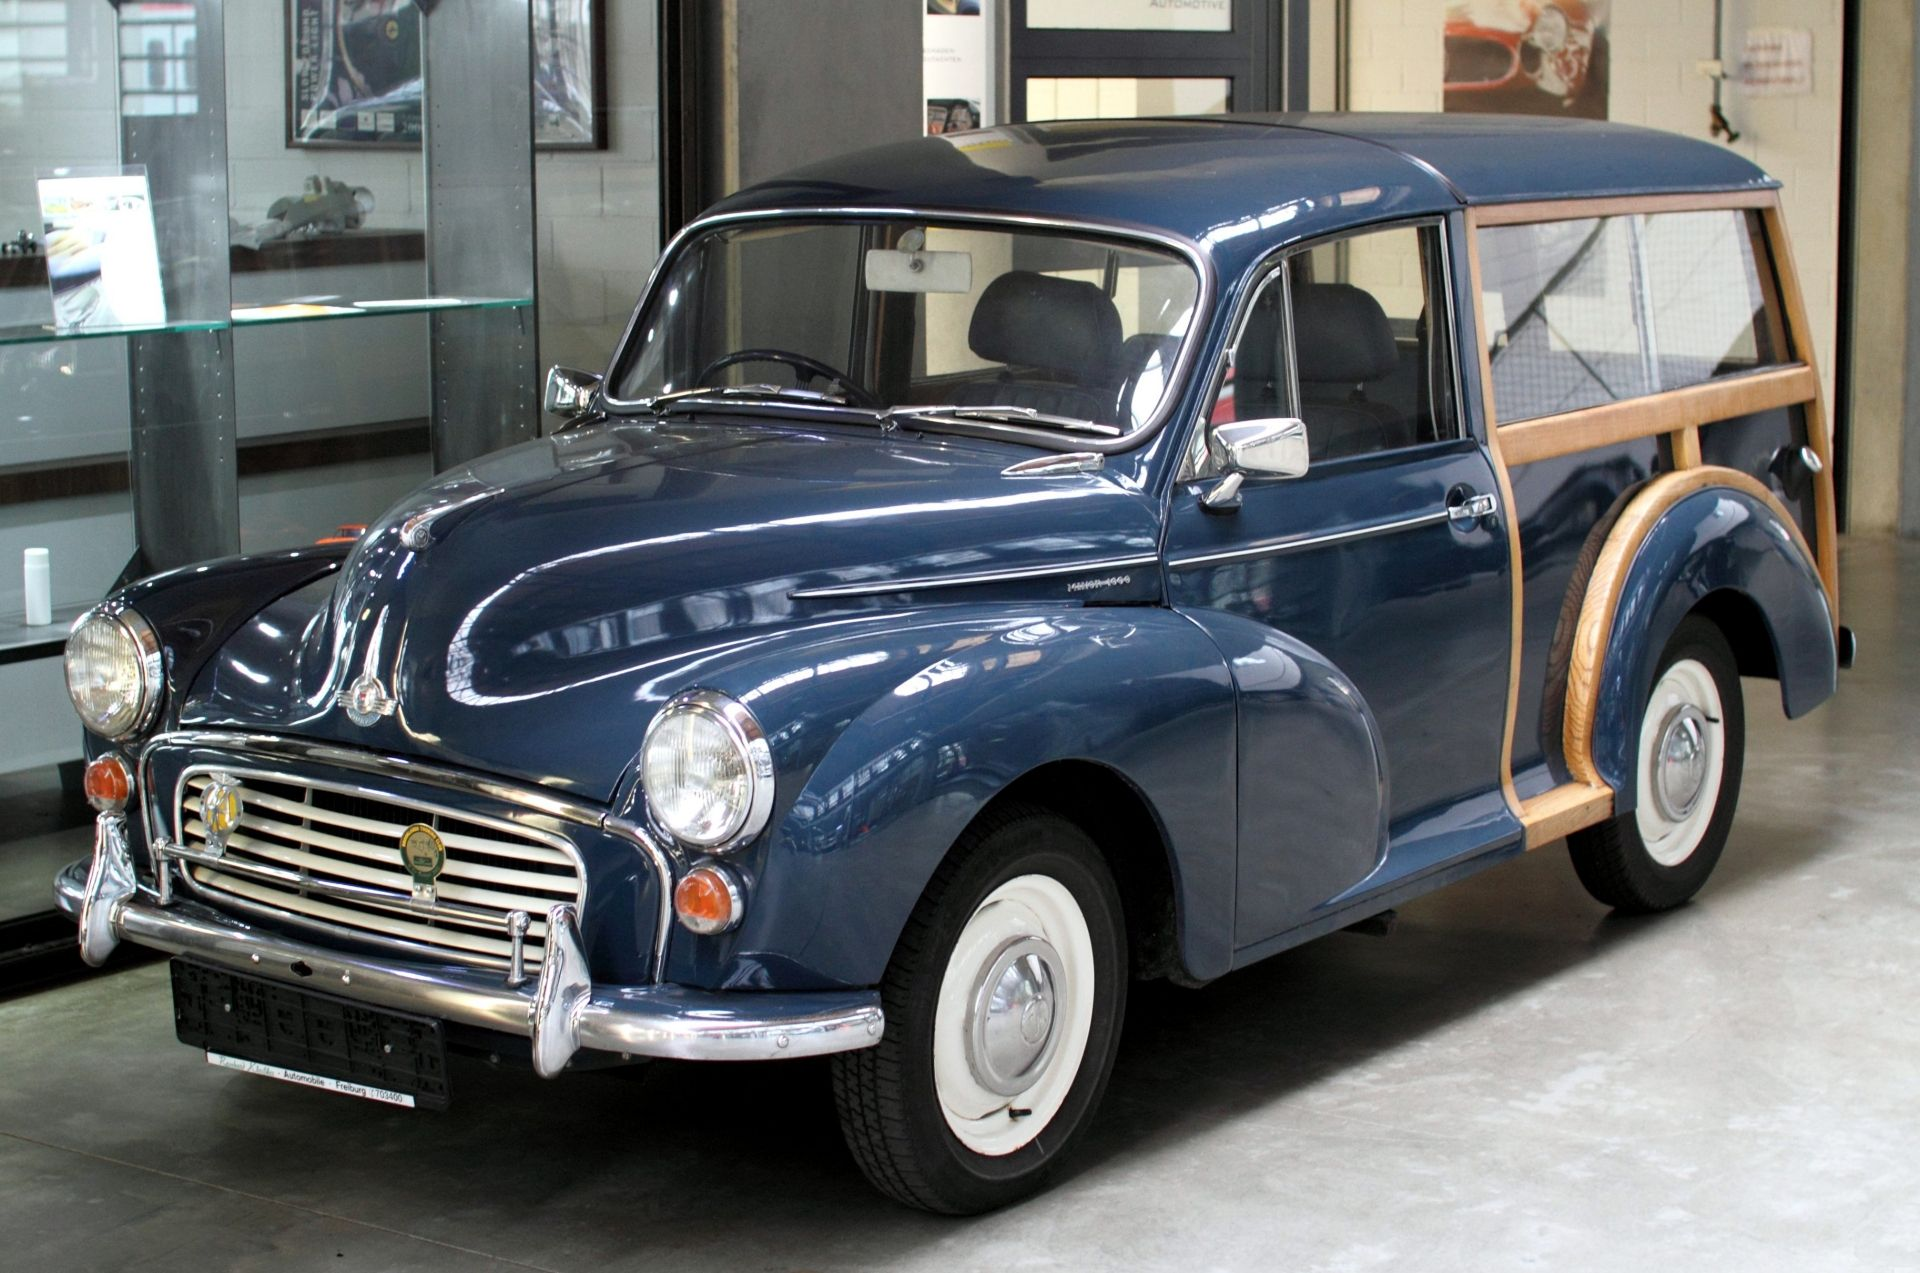 Morris Minor 1000 Traveller Morris Minor 1000 Traveller new pictures